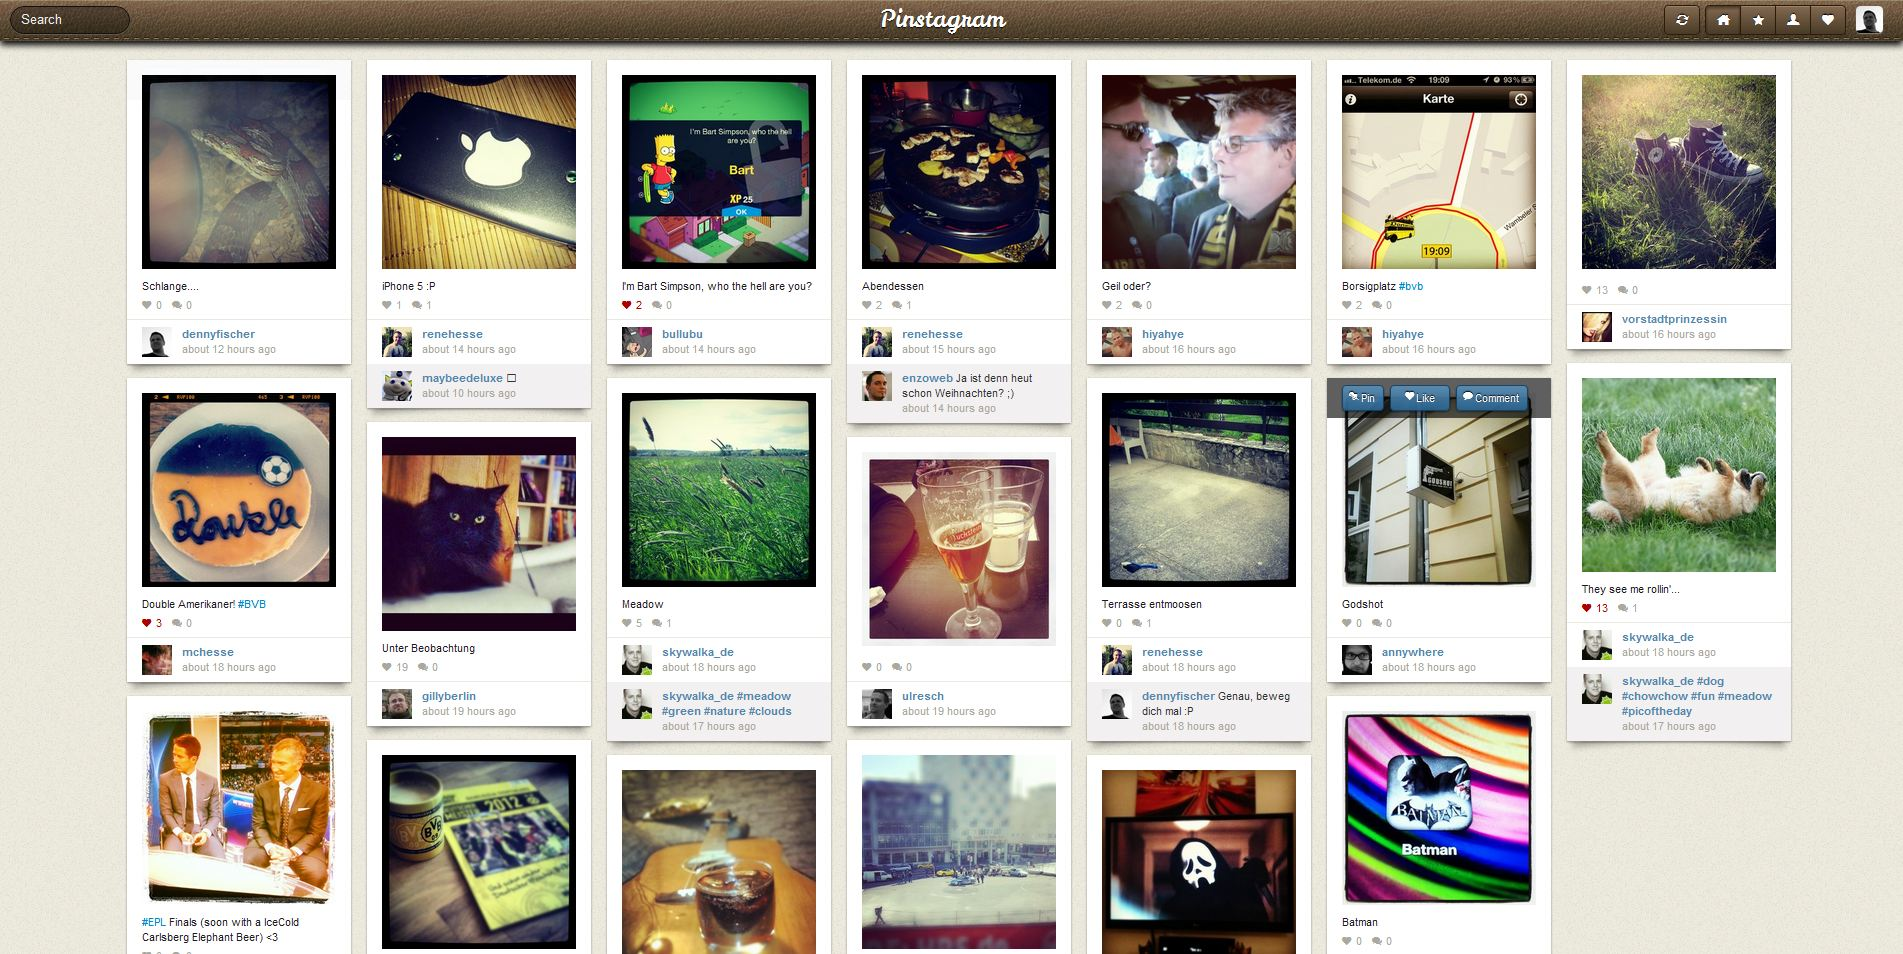 pinstagram screenshot